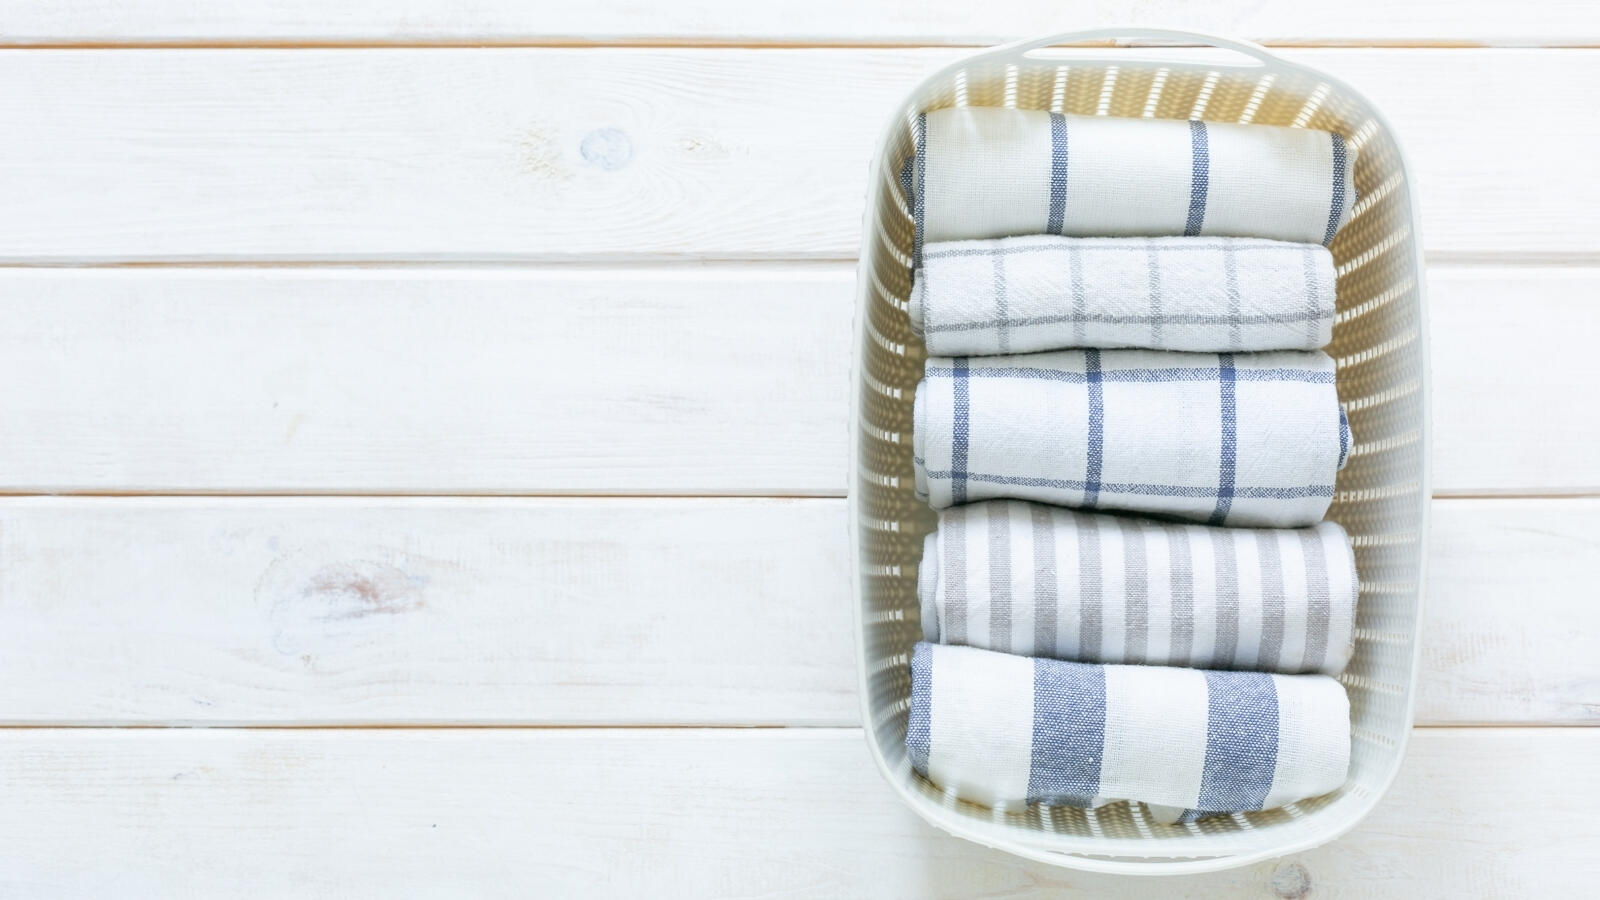 5 little tricks for a tidier home